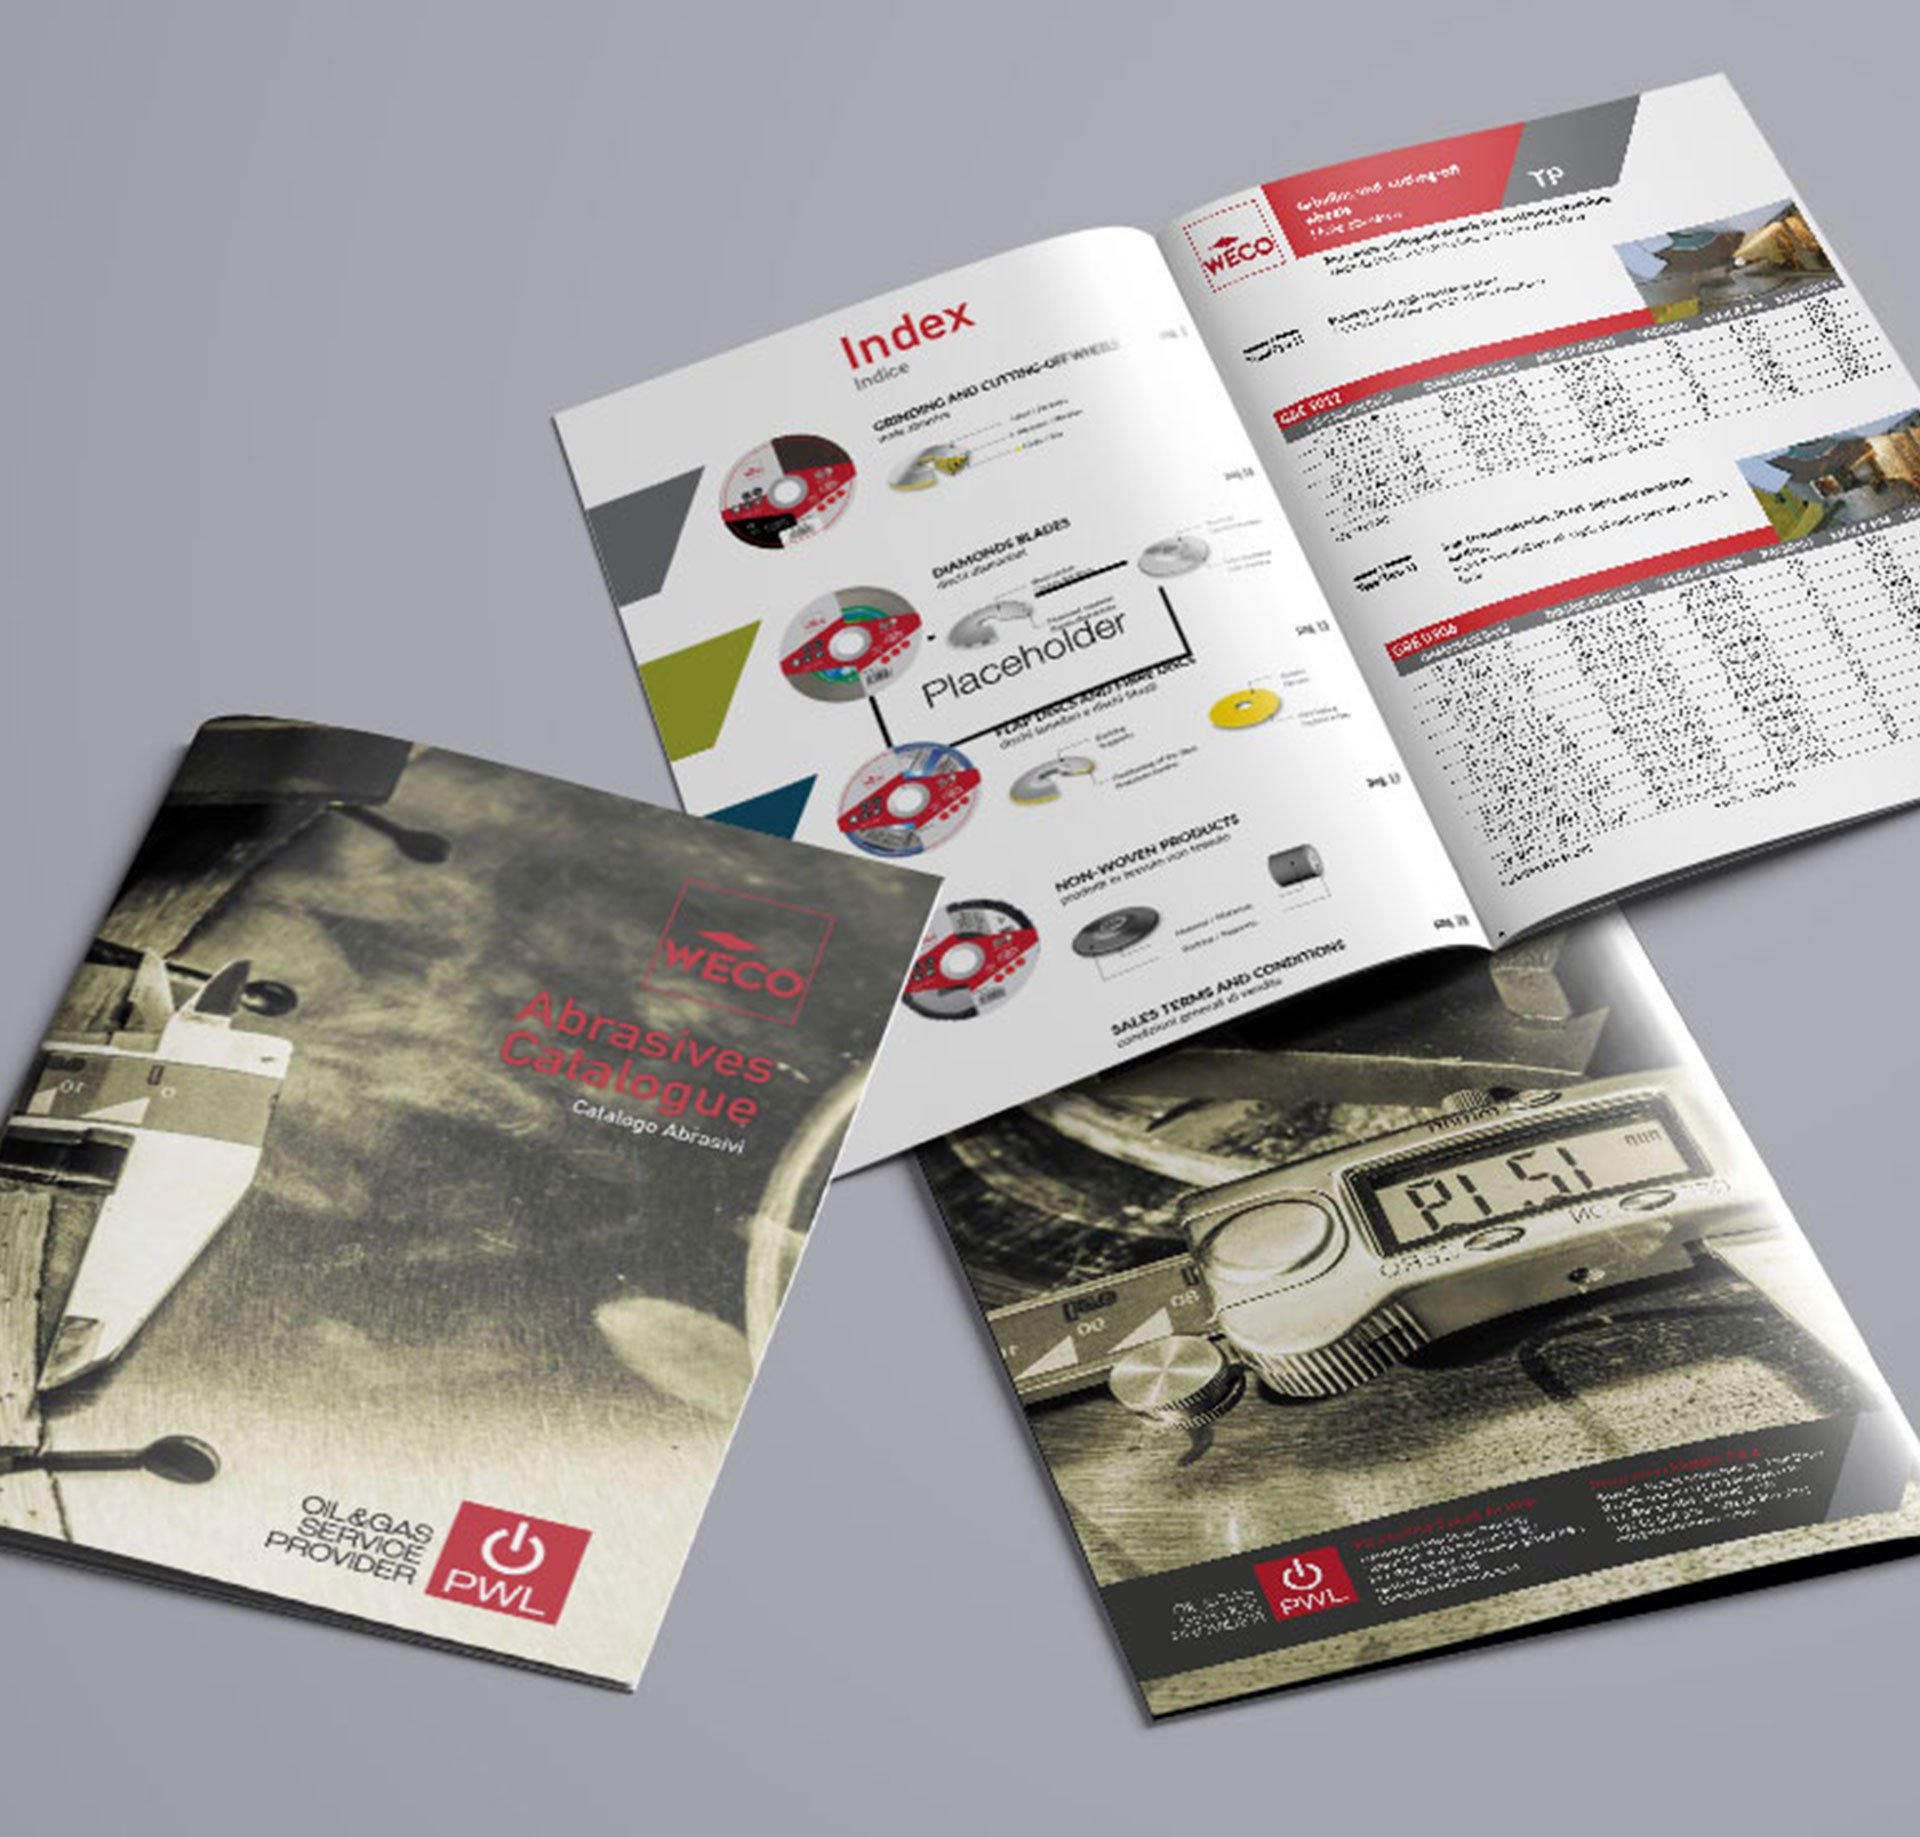 PWL Grinding Catalogue